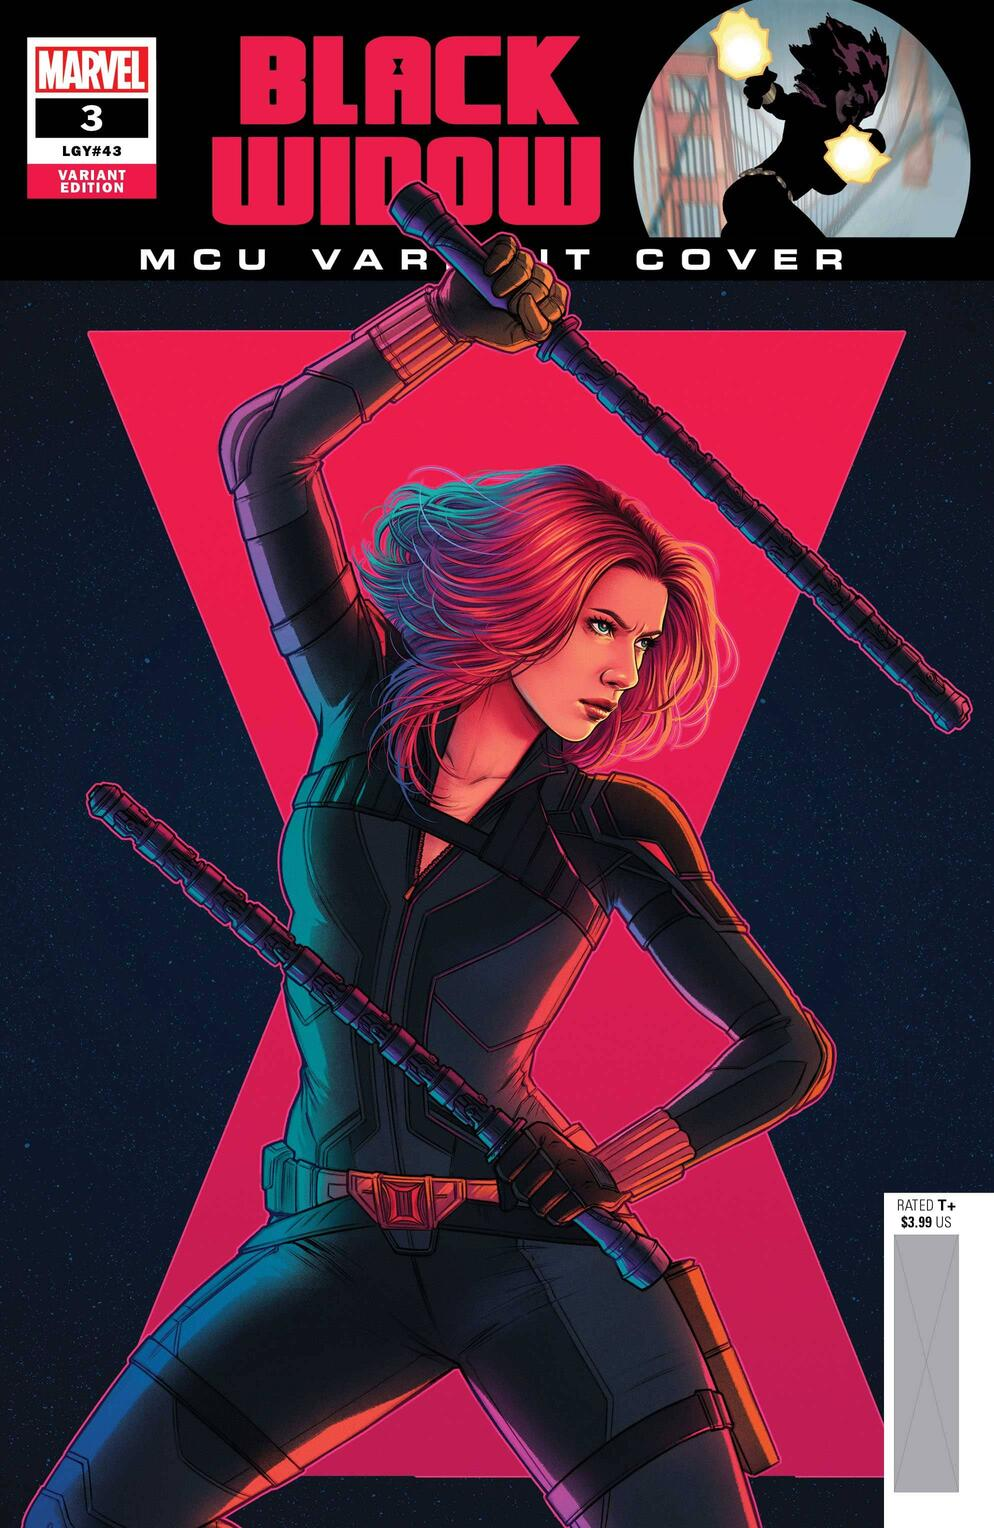 BLACK WIDOW (2020) #3 Variant Cover by Jen Bartel